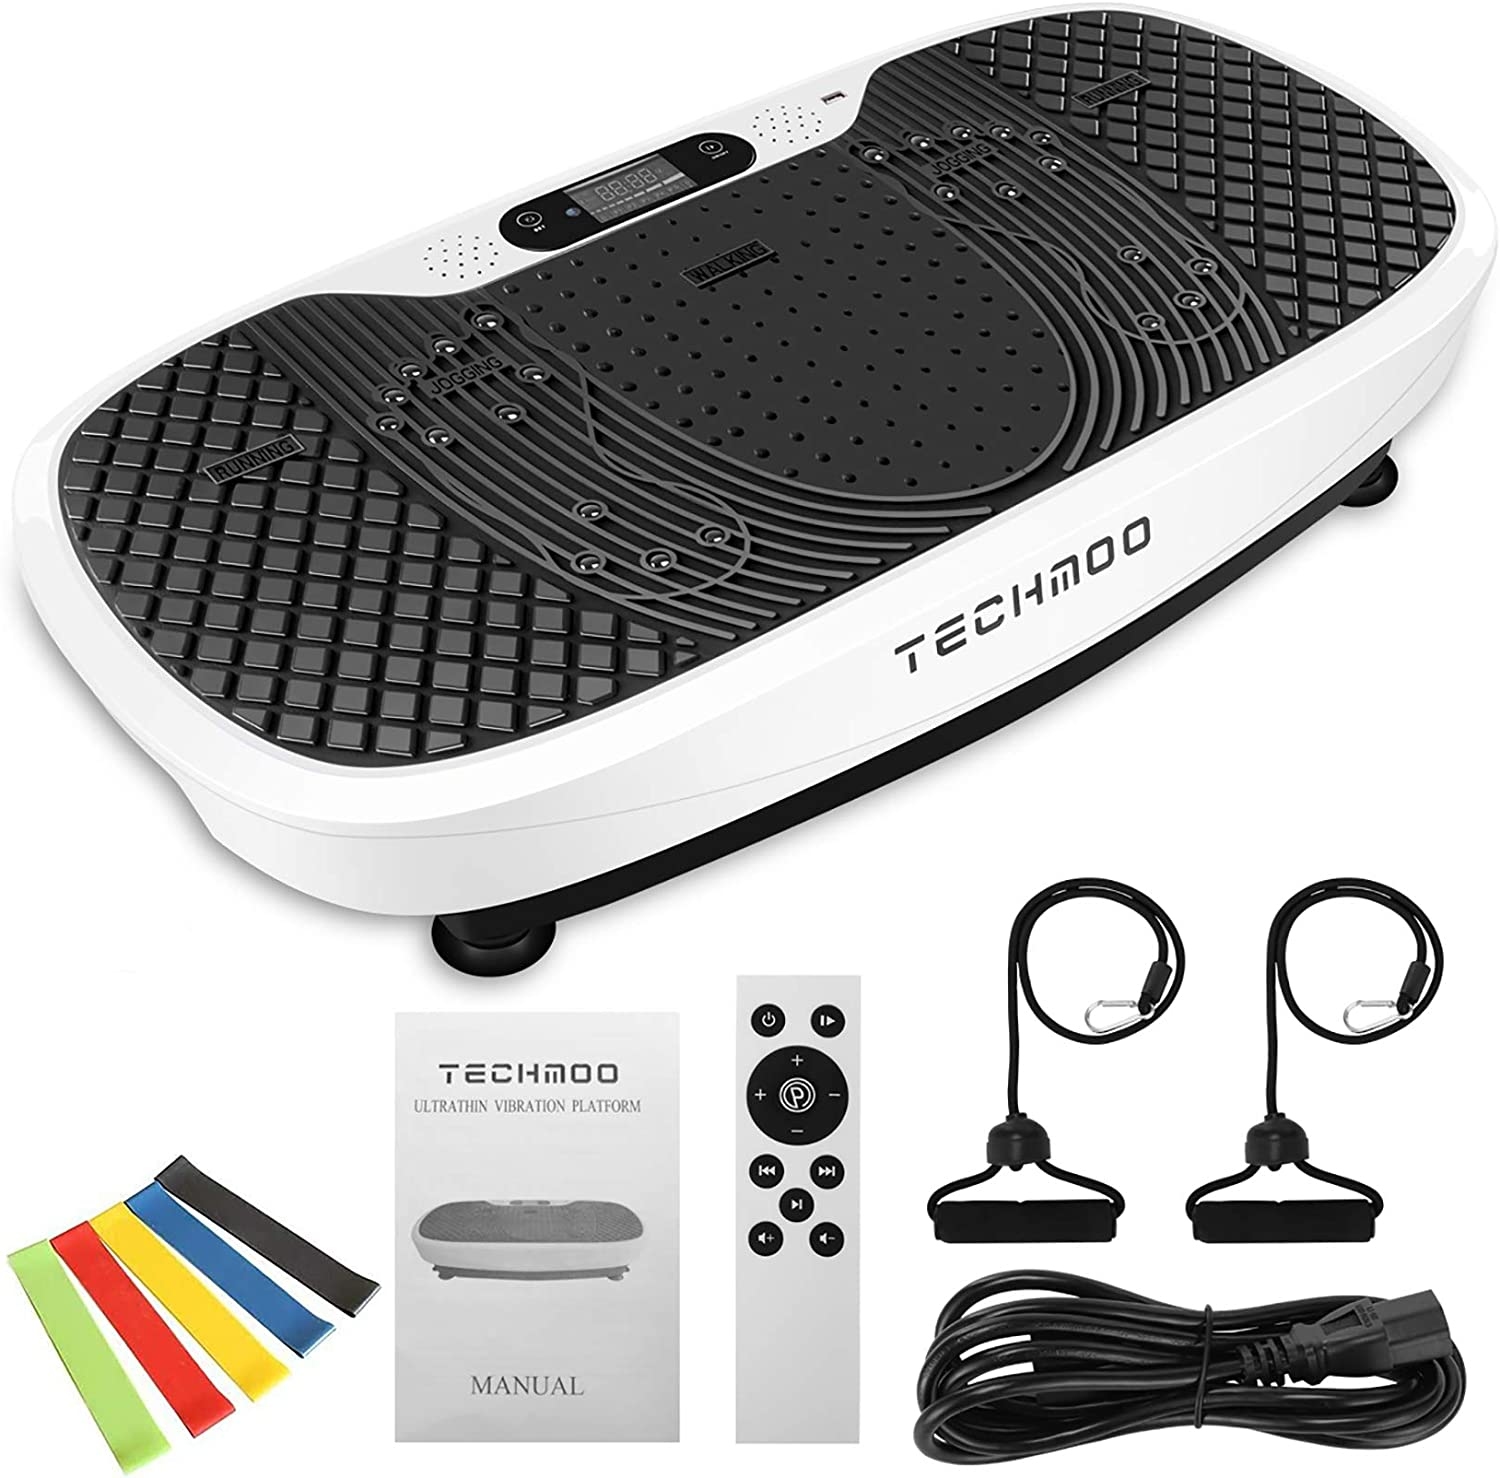 Remote-99 Levels Vibration Plate,8 Auto Running Programs Jshuang Pro Vibration Plate Exercise Machine-441Lbs,LCD Display Bluetooth